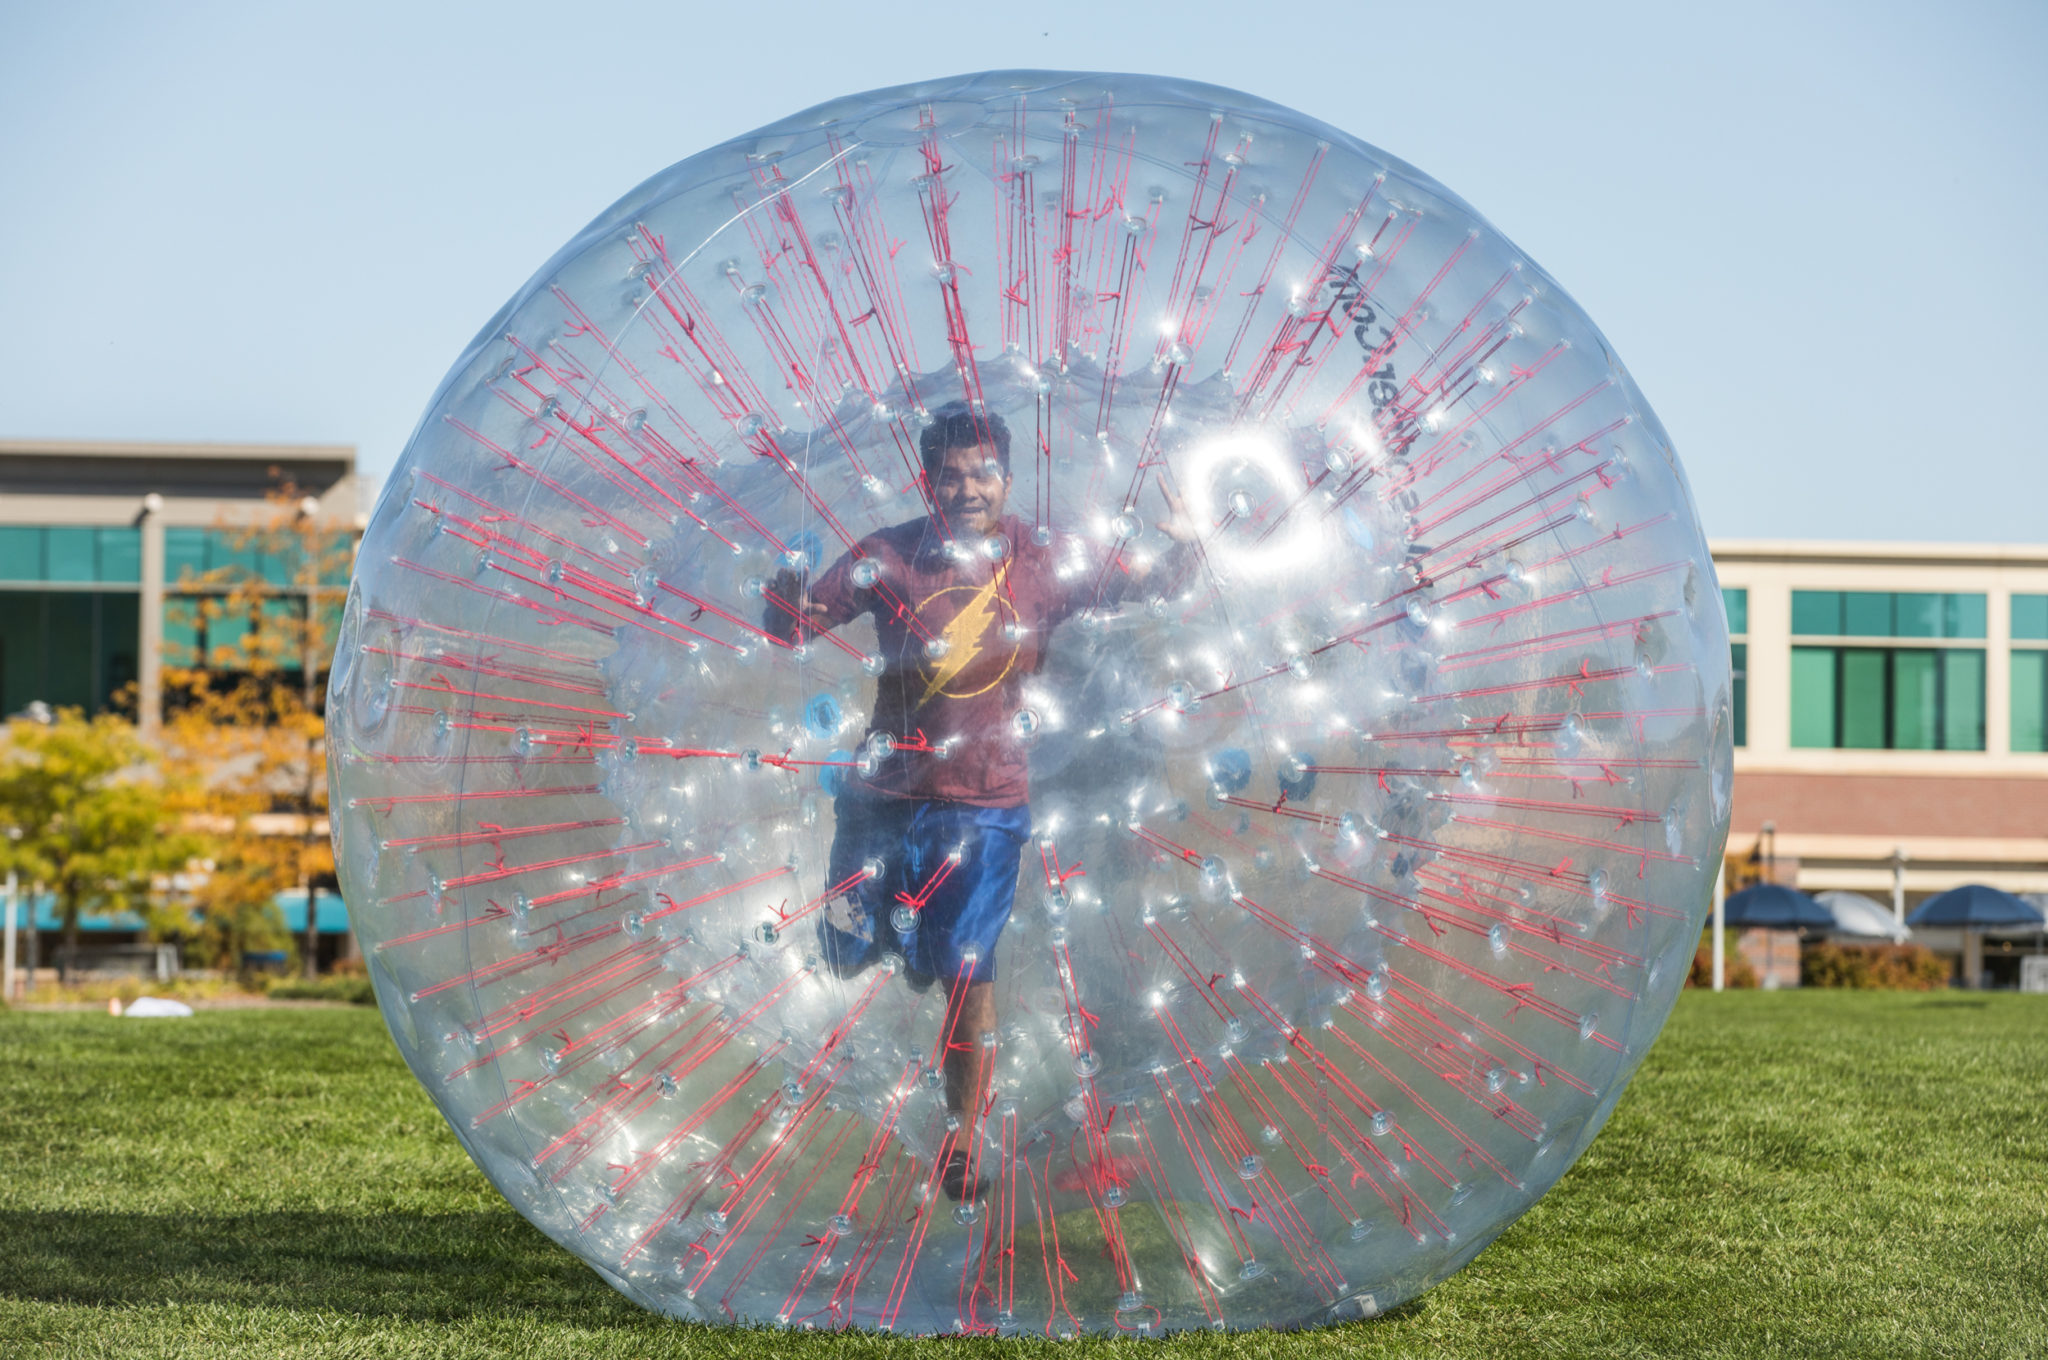 man running in giant bubble